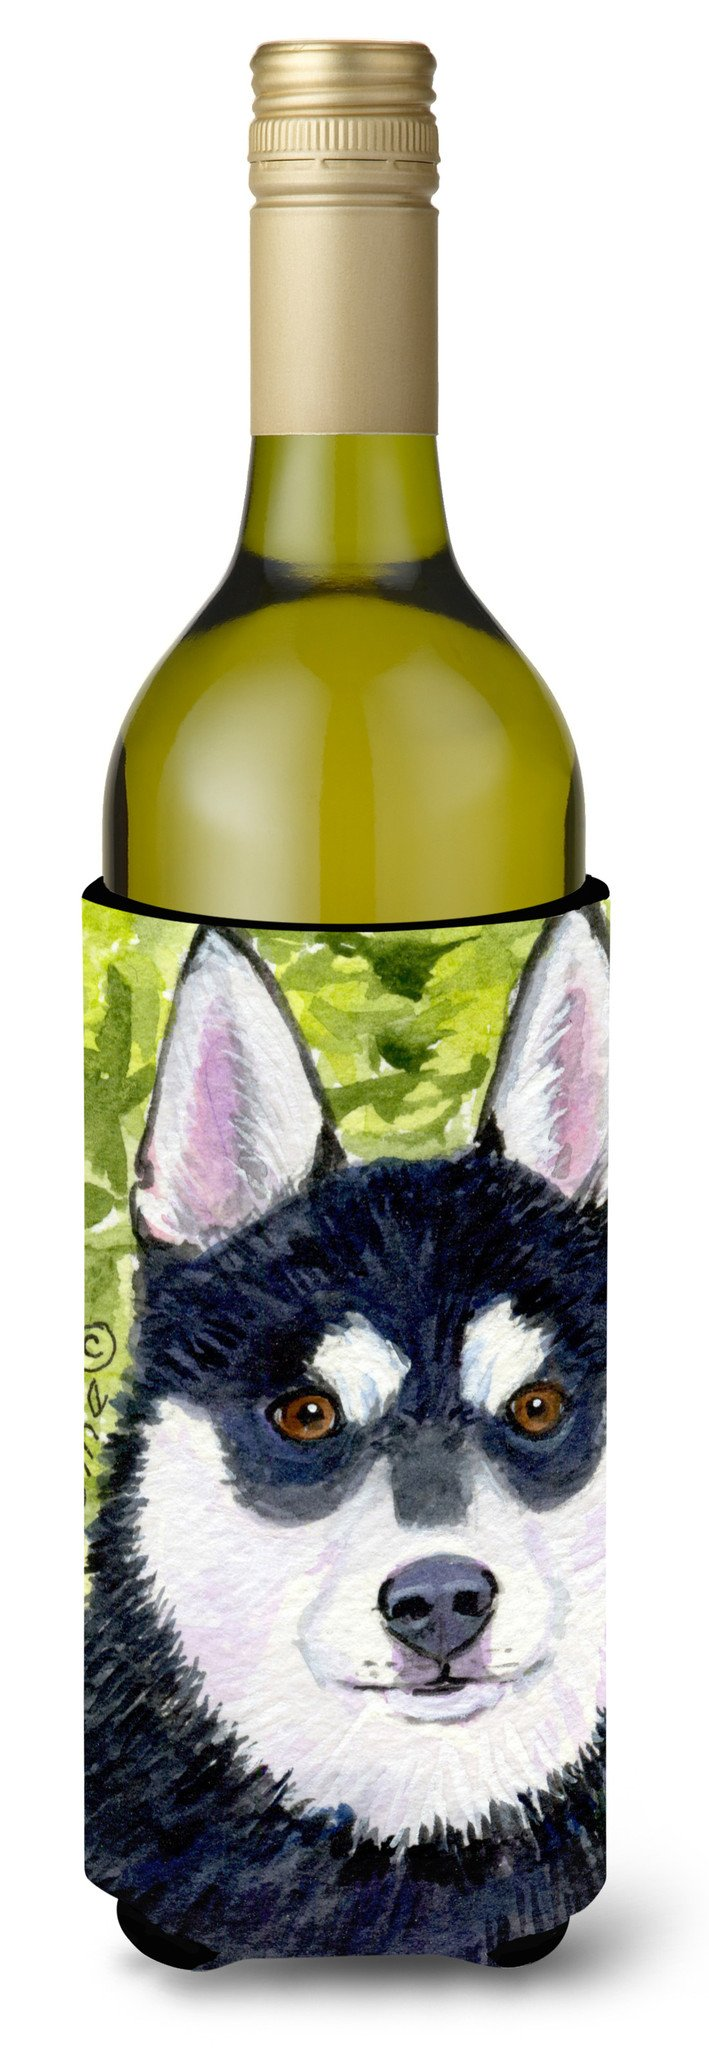 Klee Kai Wine Bottle Beverage Insulator Beverage Insulator Hugger SS8696LITERK by Caroline's Treasures